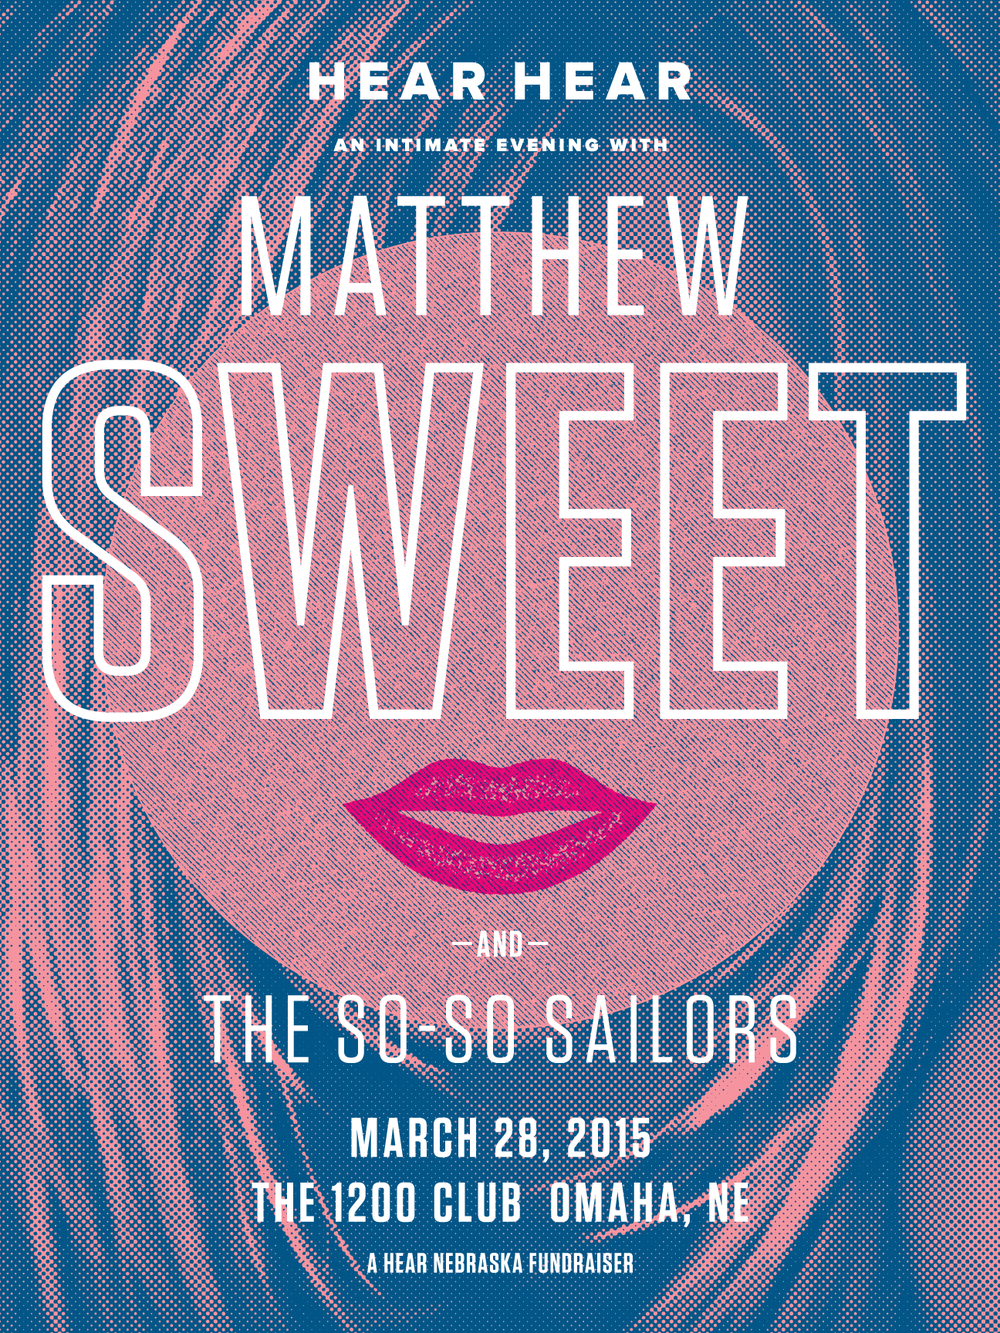 Matthew Sweet: Hear Nebraska Fundraiser 2015